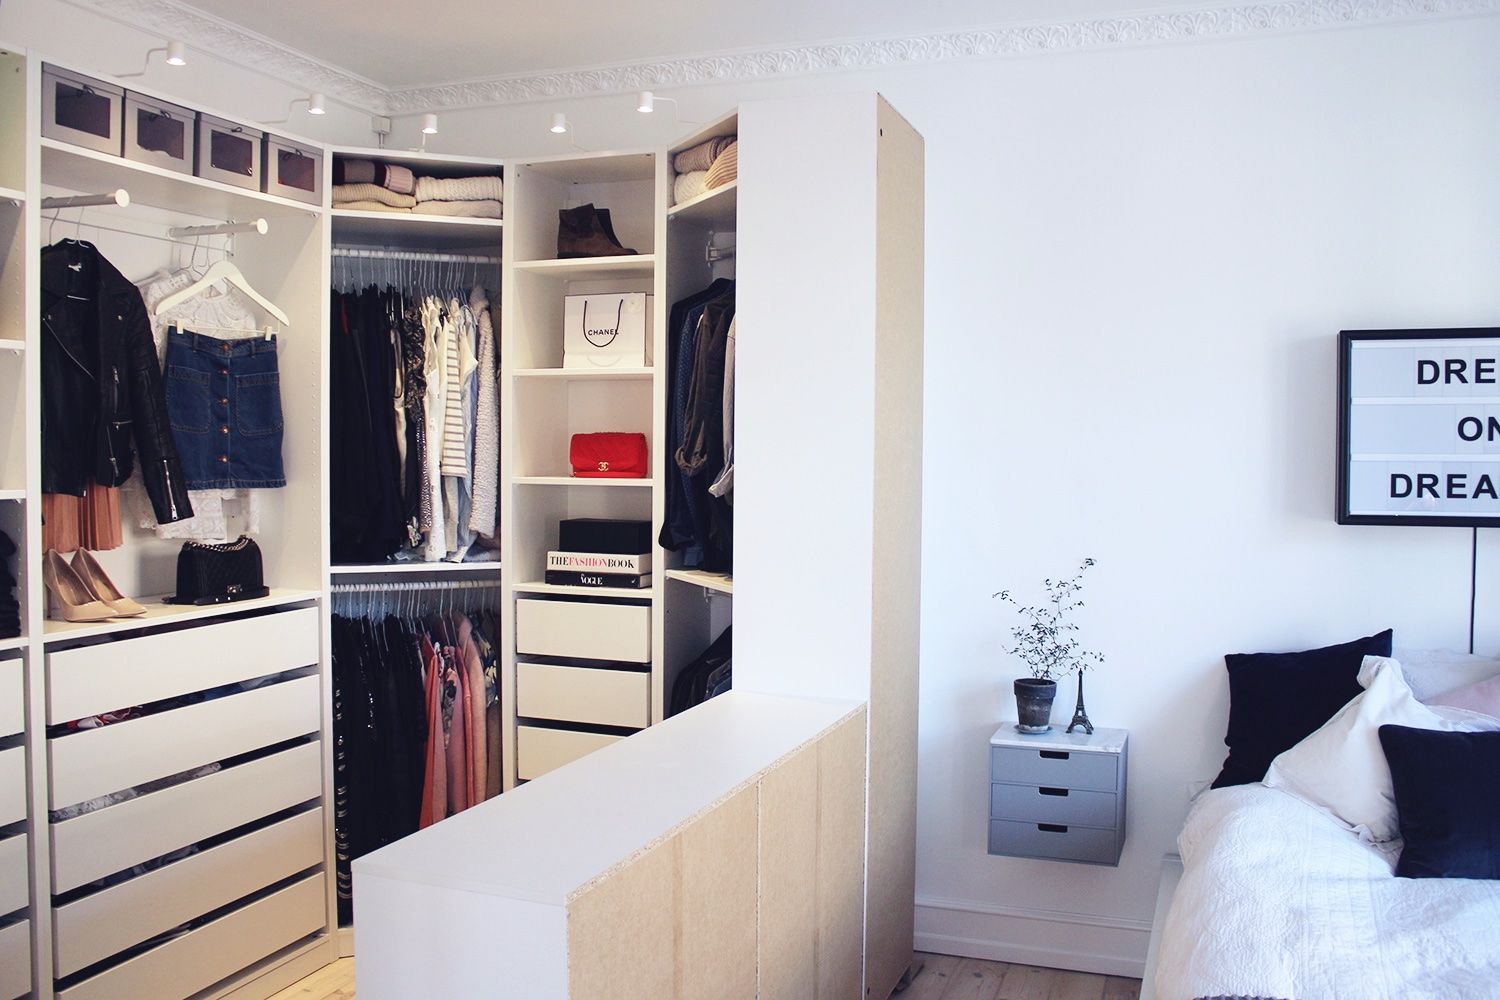 Ikea Kit Dressing Create Your Own Walk In Closet In The Bedroom How Did I Not Think